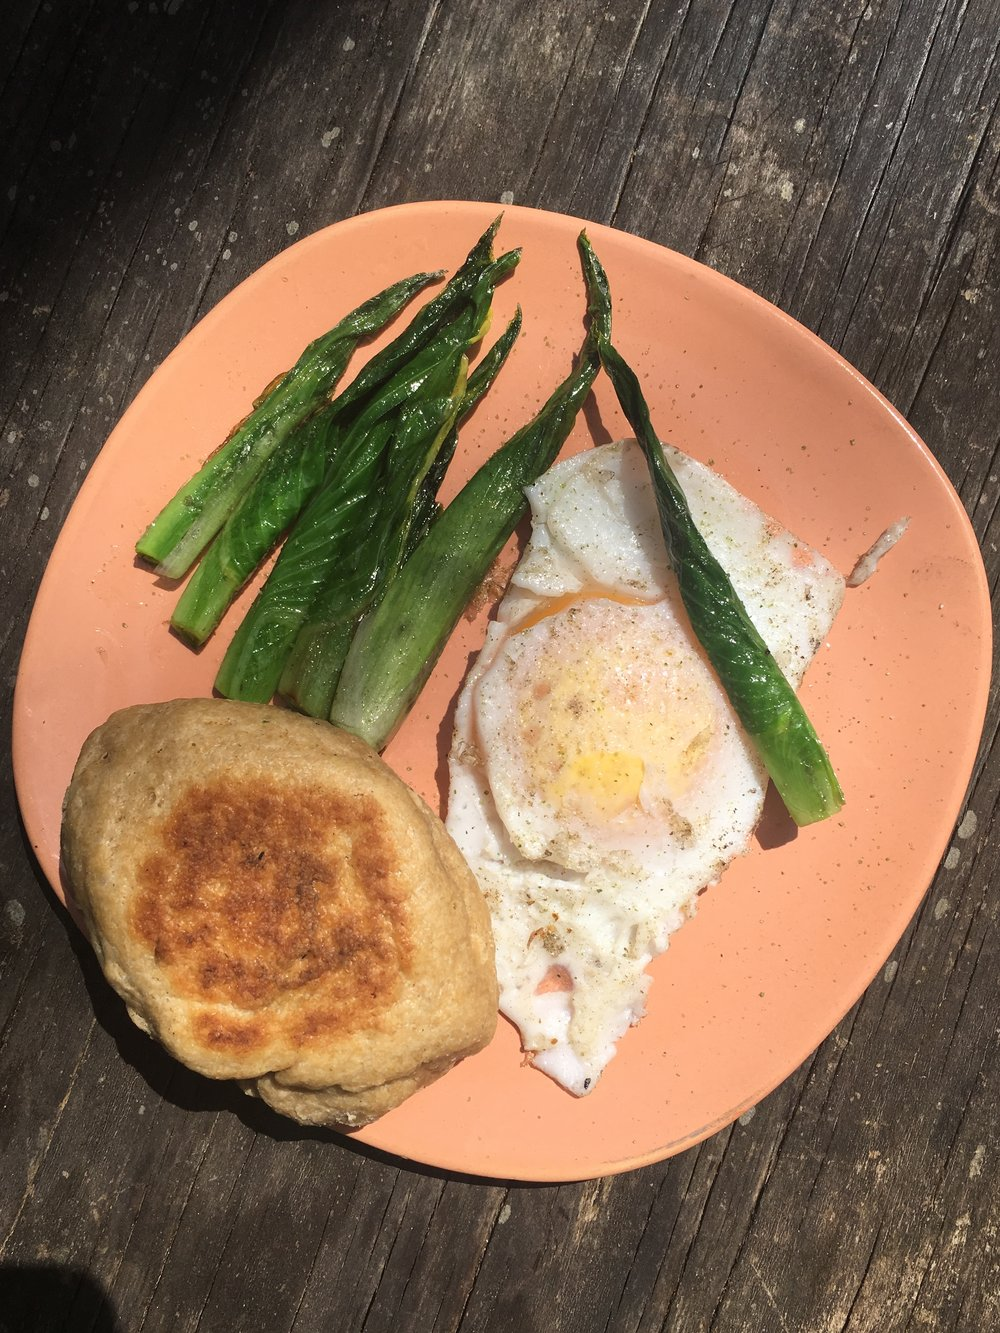 Hosta shoots, duck egg, and homemade biscuit, with ramp salt.